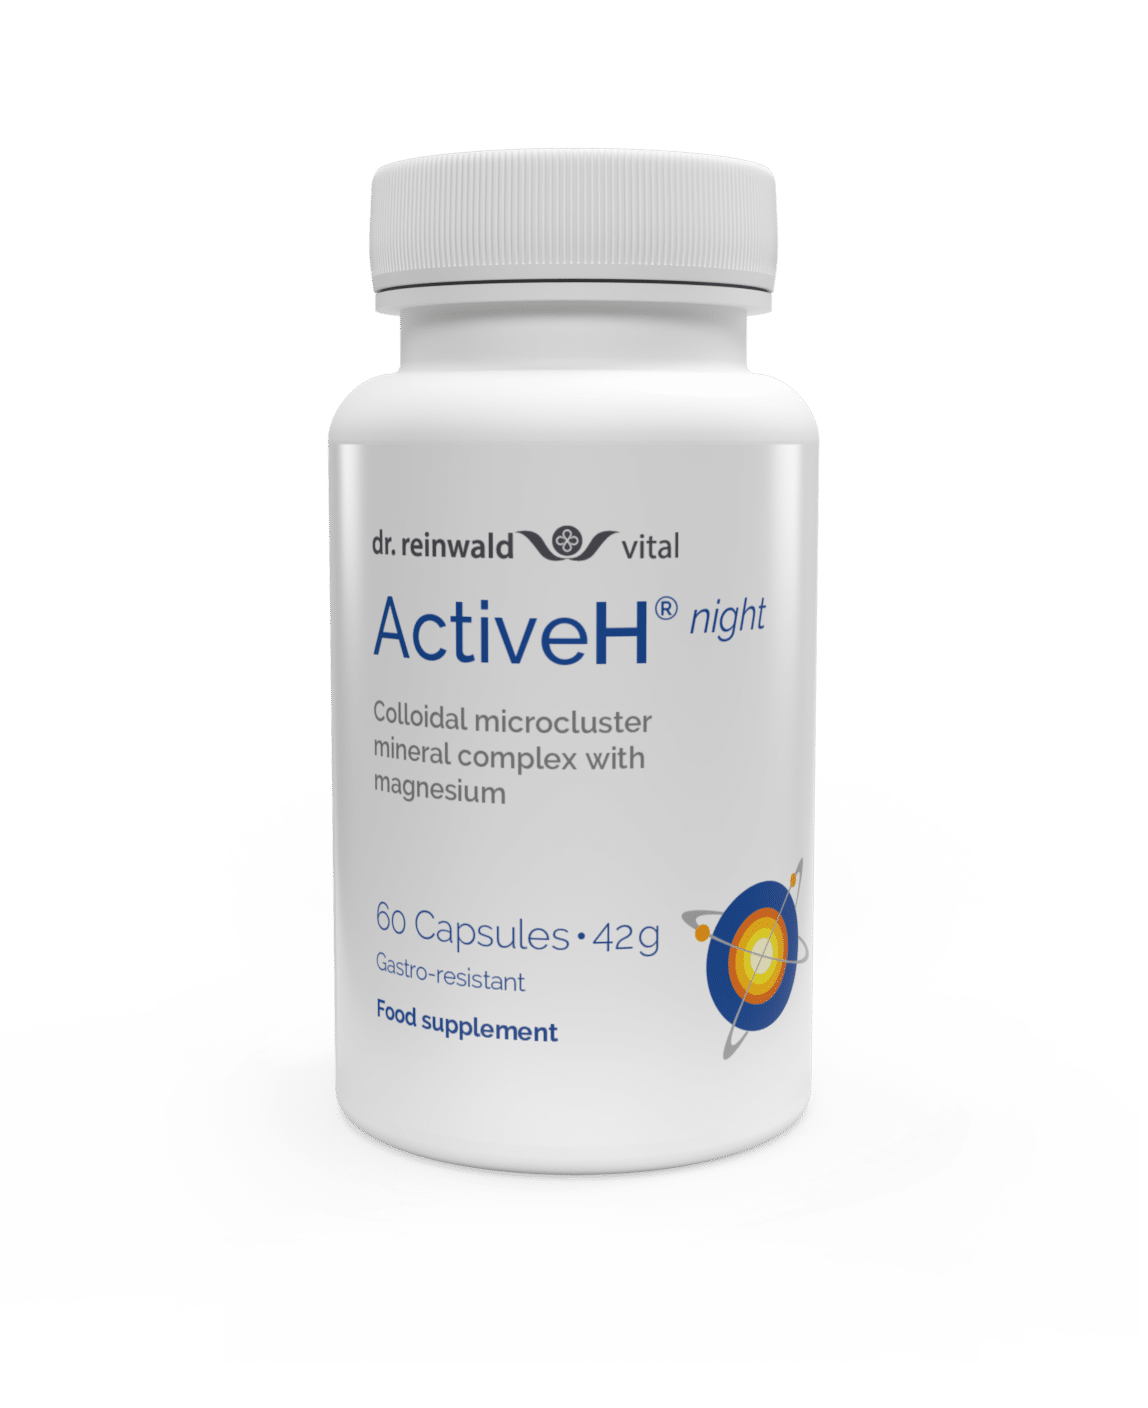 Active H® night